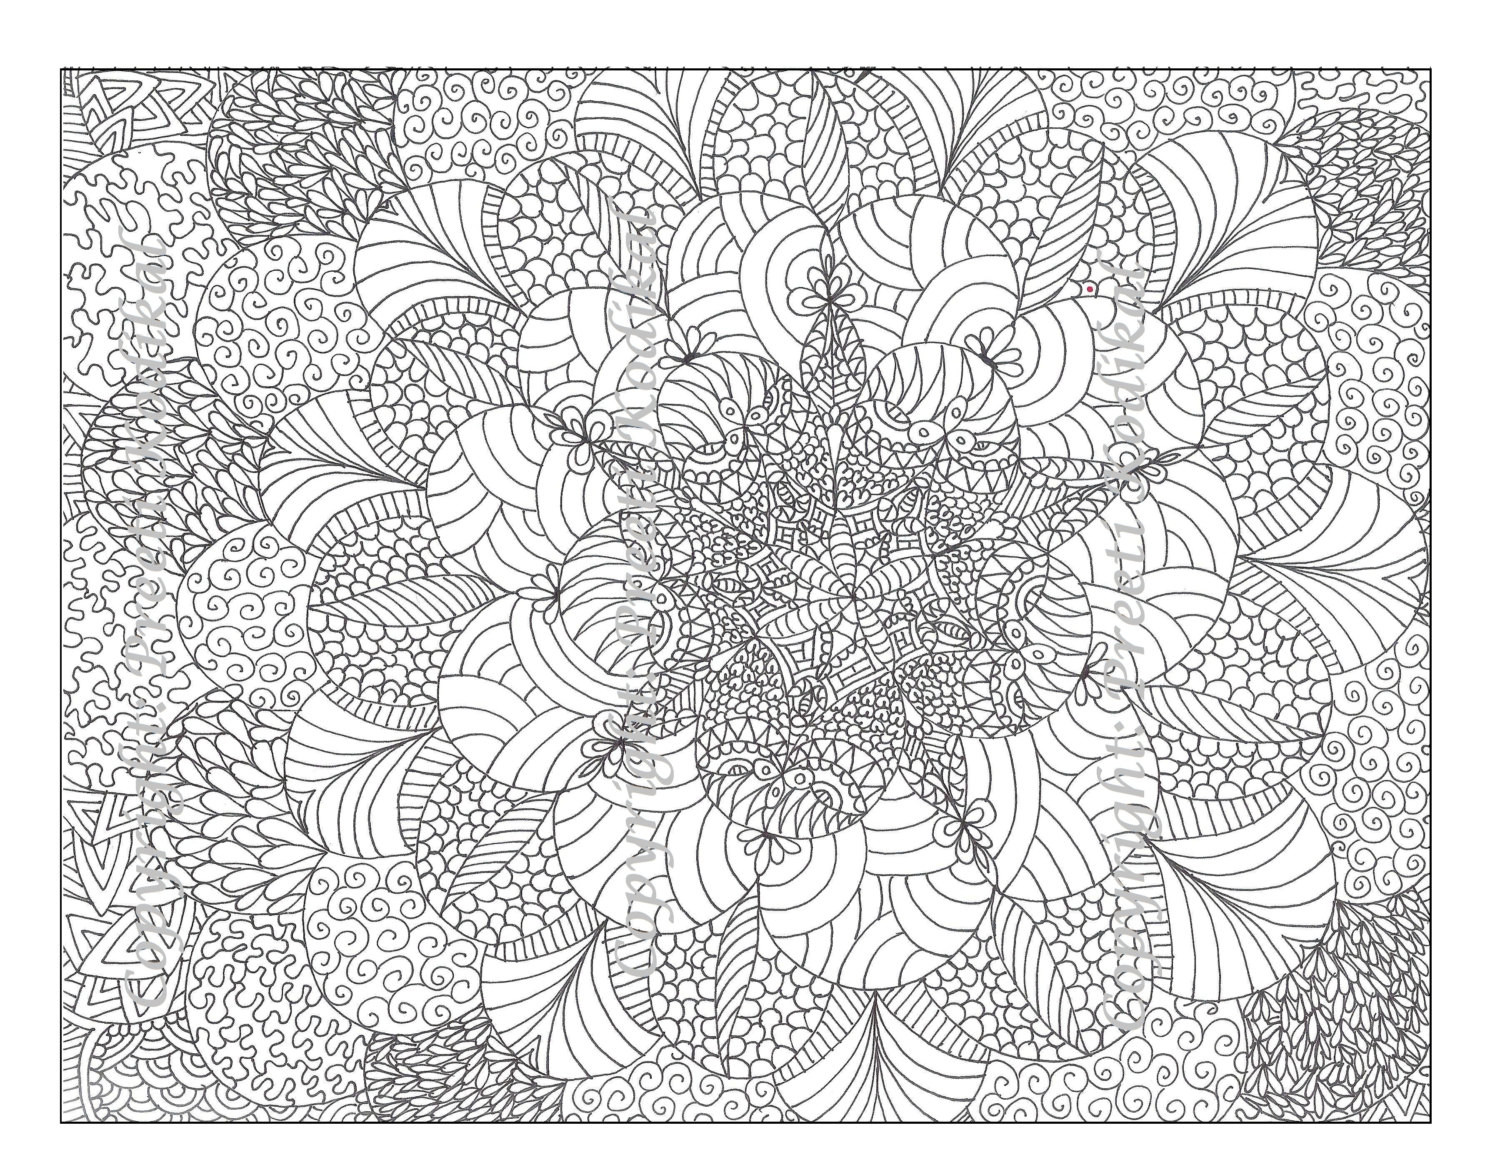 Best ideas about Detailed Coloring Pages For Adults . Save or Pin Free Printable Abstract Coloring Pages for Adults Now.